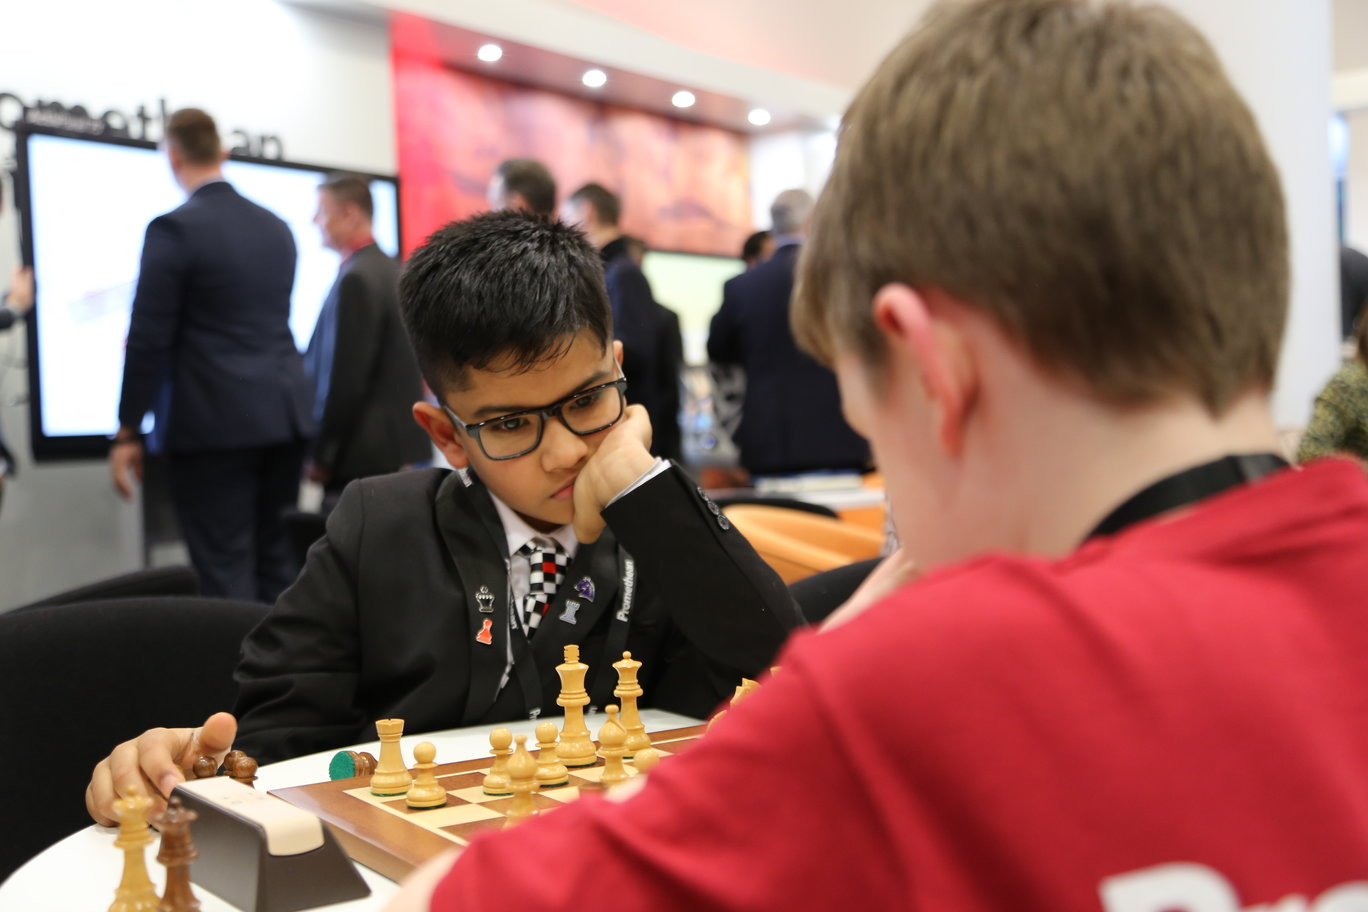 Critical and analytical thinking are some of the key skills learned in chess